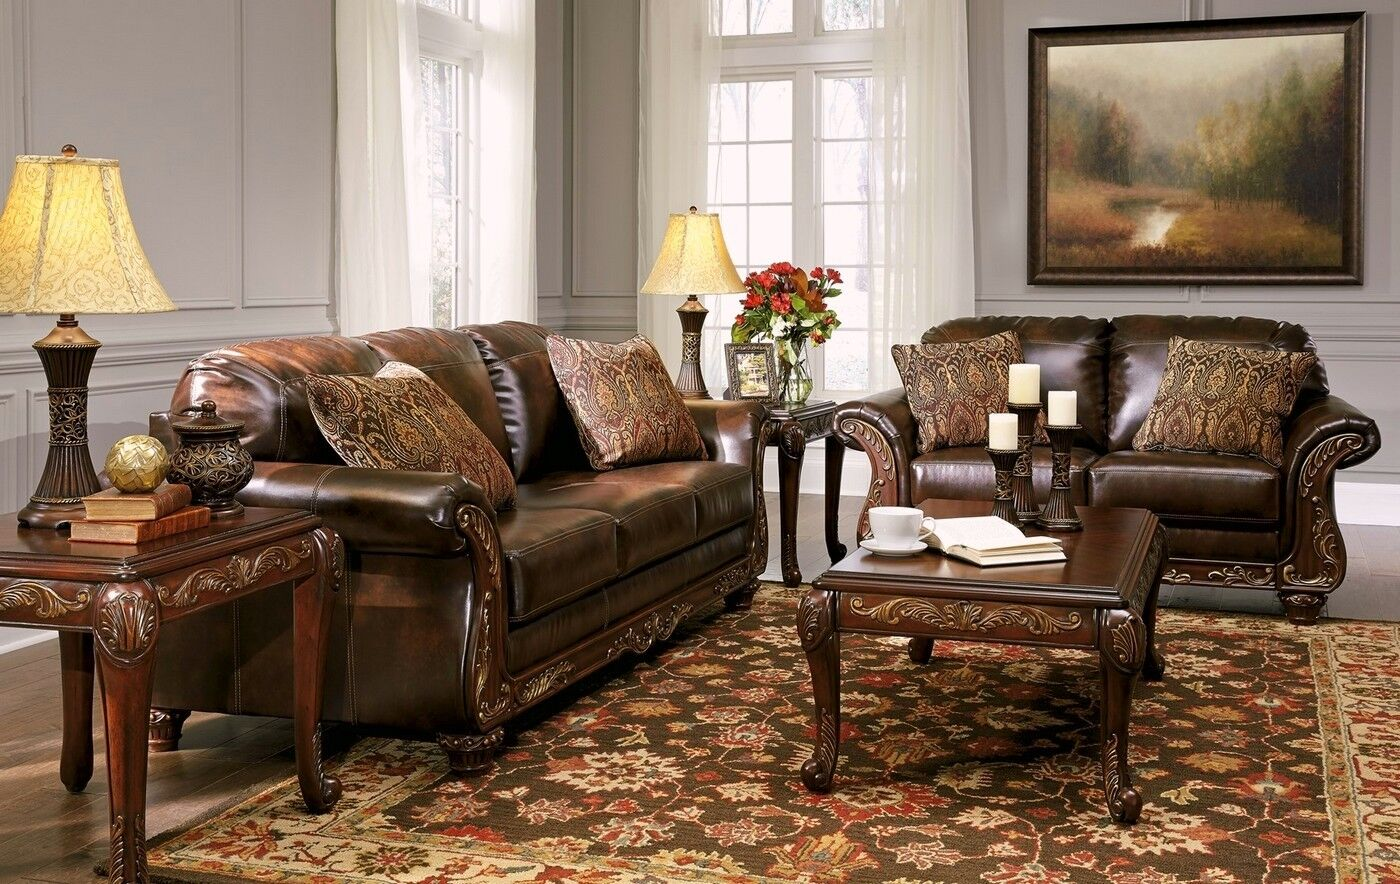 Brown leather living room furniture - Vanceton Mocha Brown Leather Traditional Wood Sofa Loveseat Living Room Set